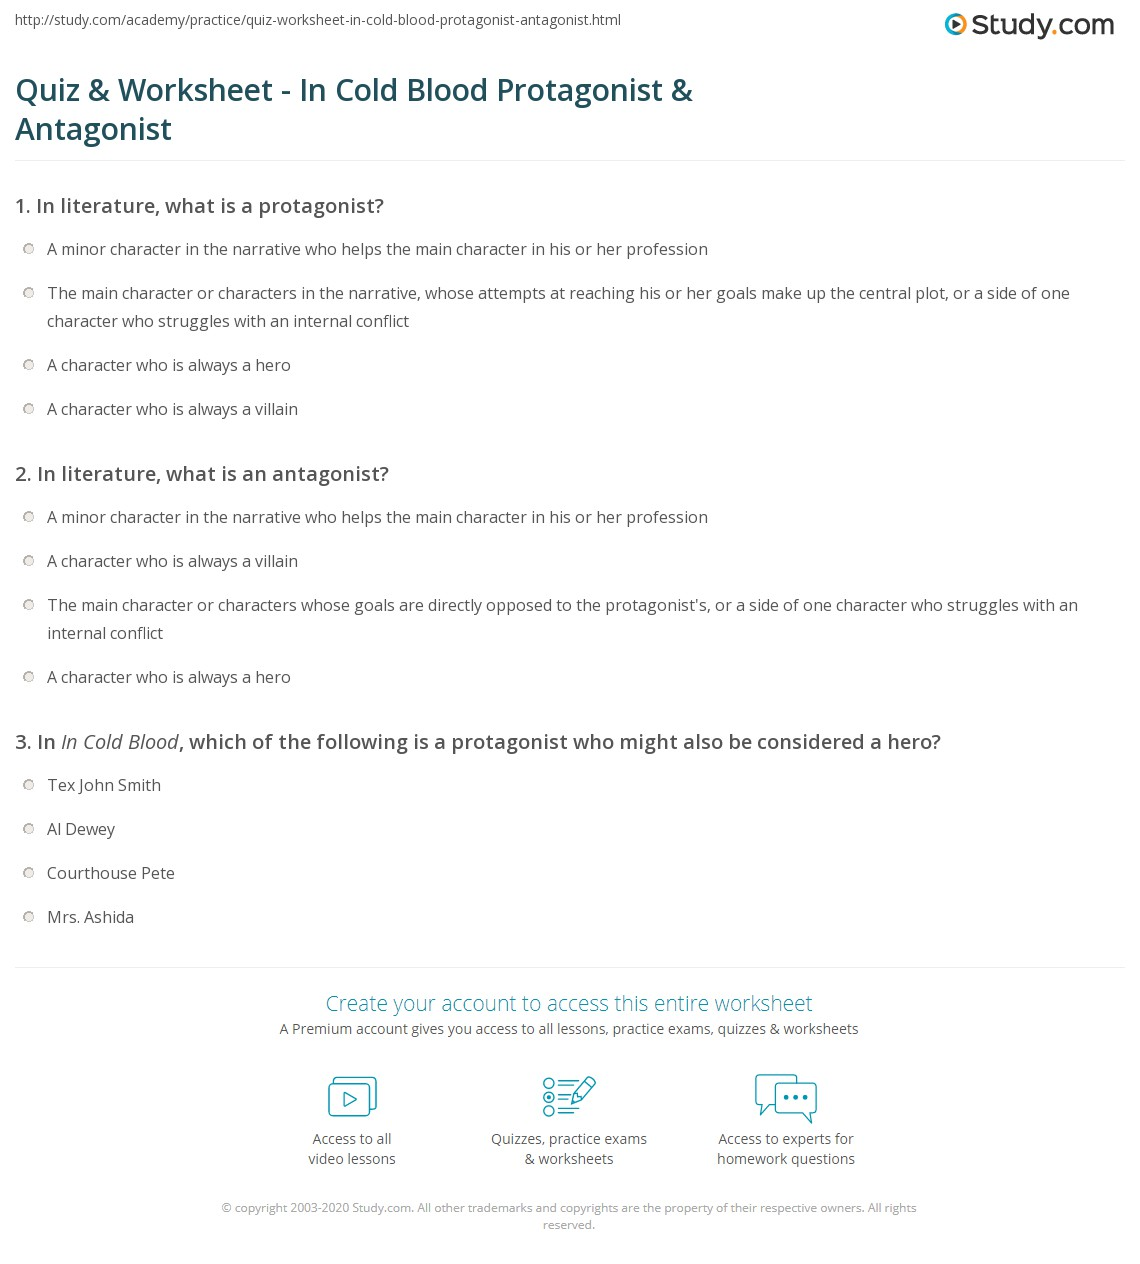 worksheet Protagonist And Antagonist Worksheet quiz worksheet in cold blood protagonist antagonist study com print worksheet